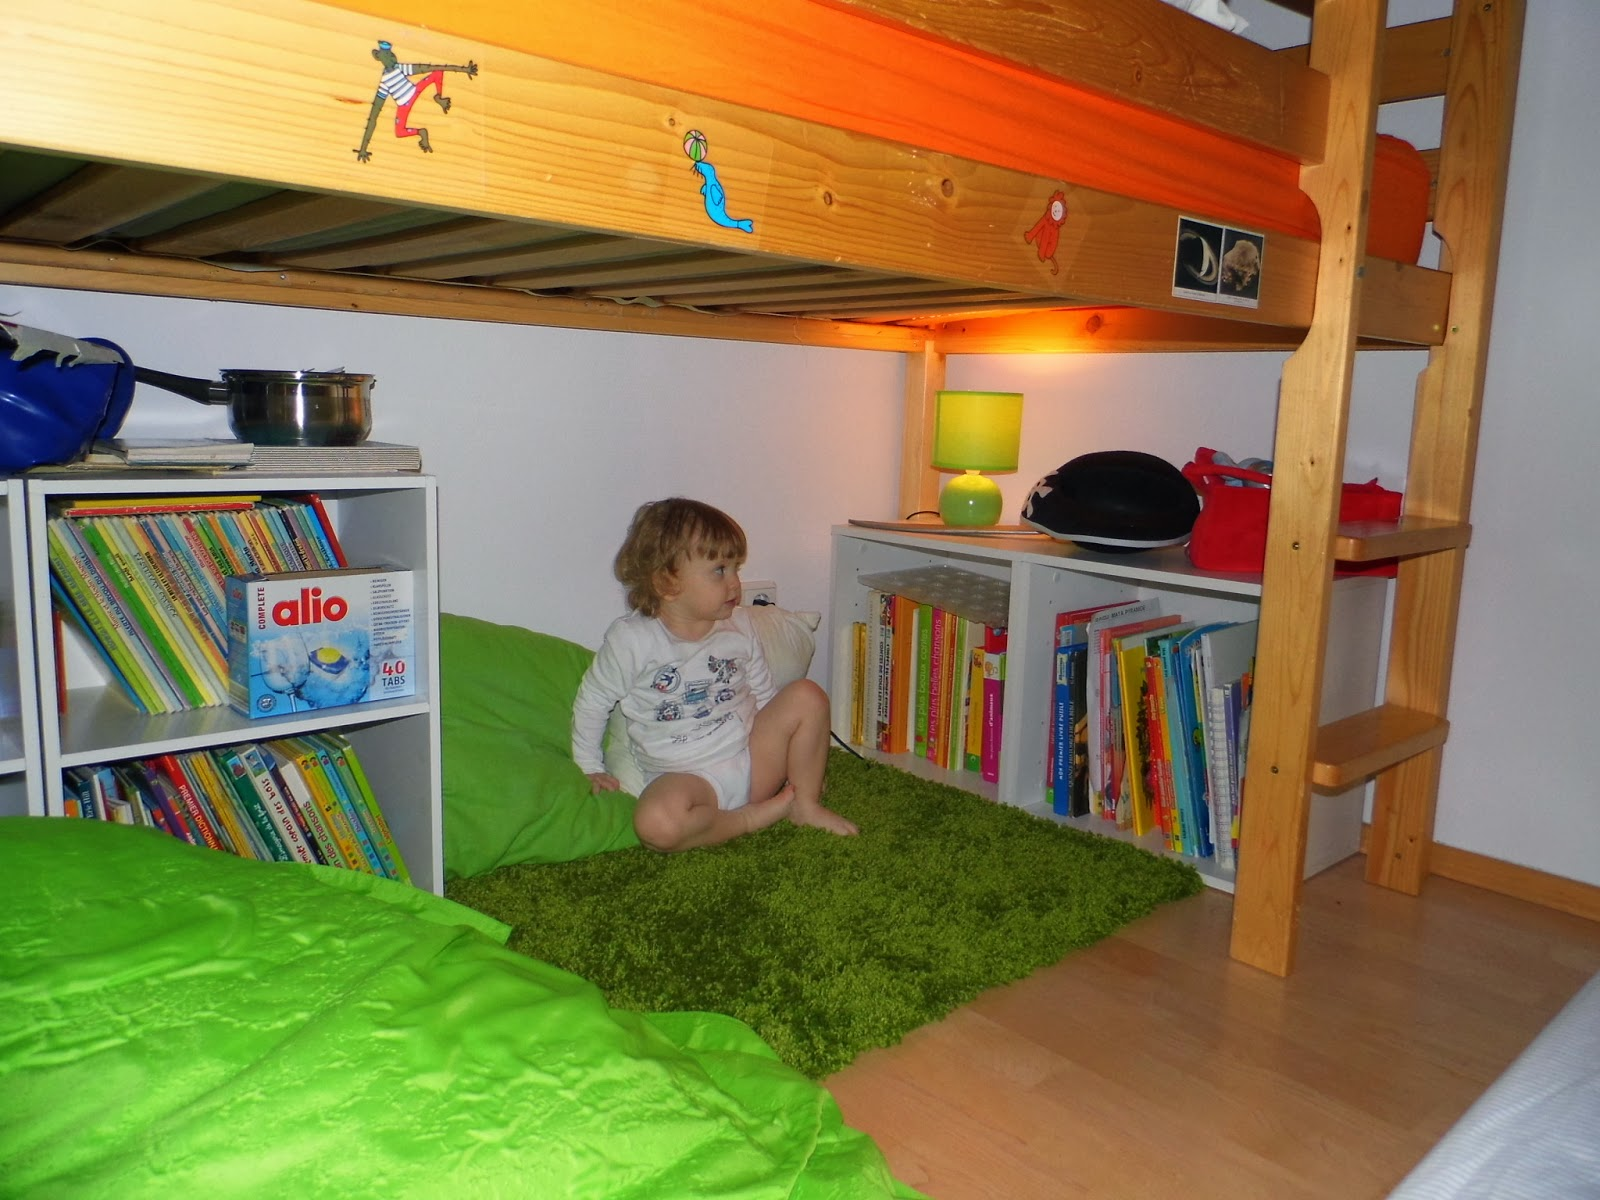 la cit des vents organiser un coin lecture sous un lit a reading corner organized under a bed. Black Bedroom Furniture Sets. Home Design Ideas